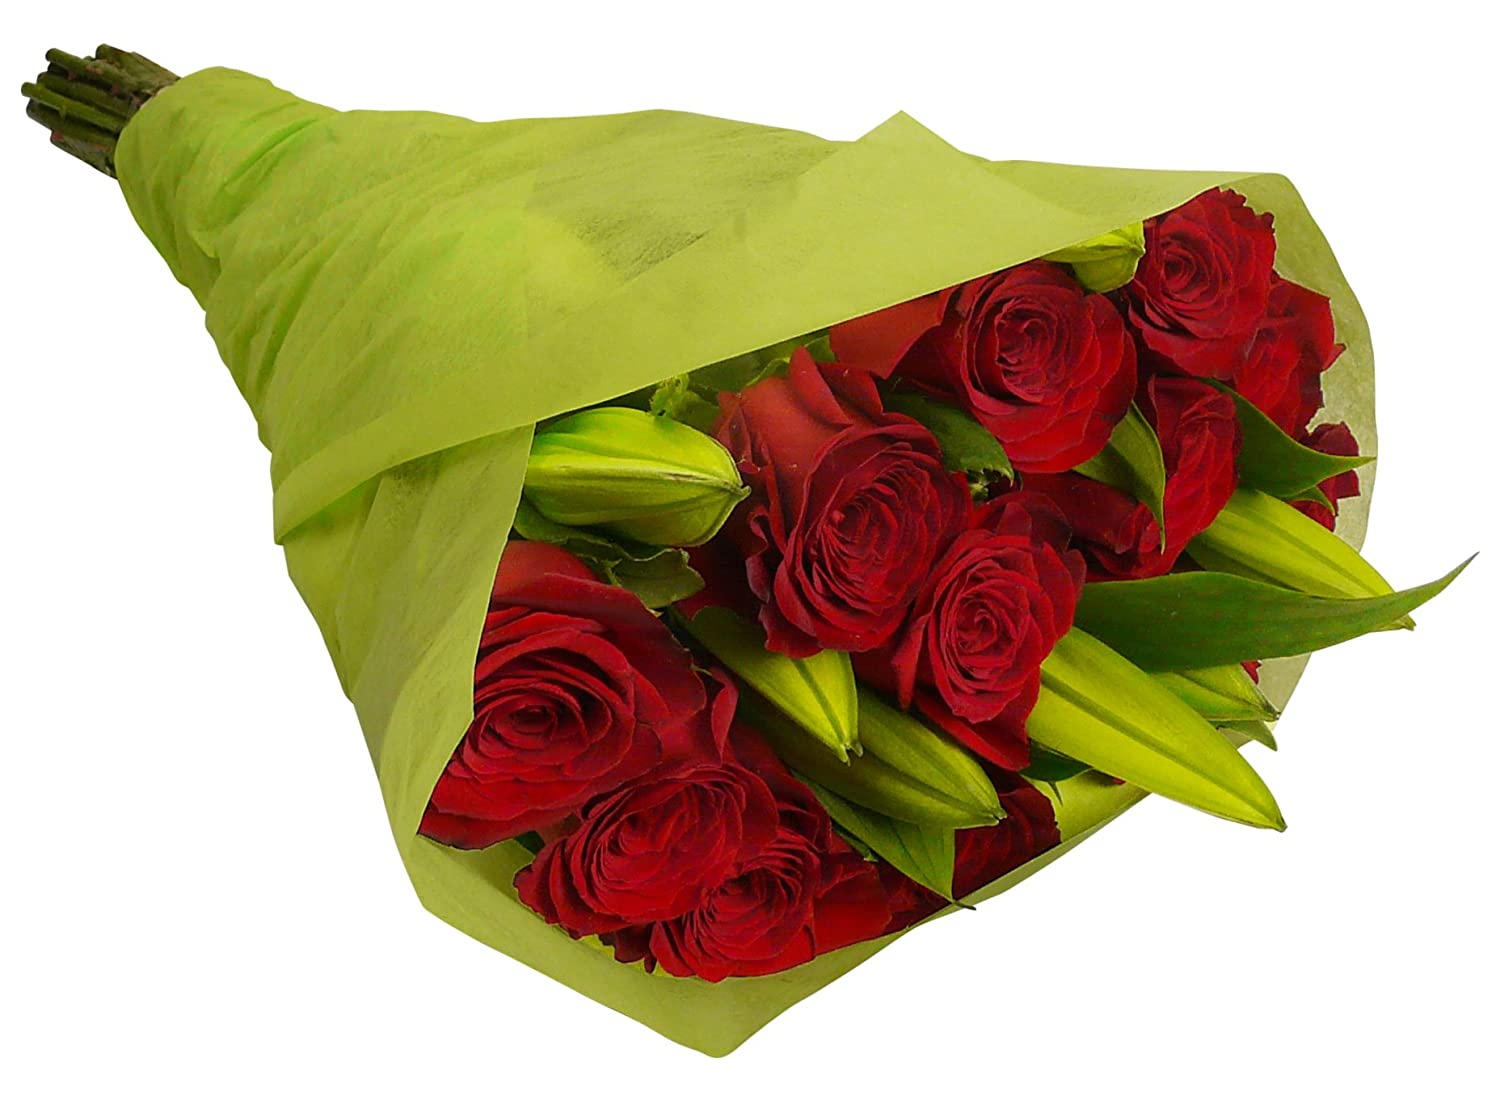 Amazon benchmark bouquets red roses and white oriental lilies amazon benchmark bouquets red roses and white oriental lilies with vase fresh cut format mixed flower arrangements grocery gourmet food izmirmasajfo Images